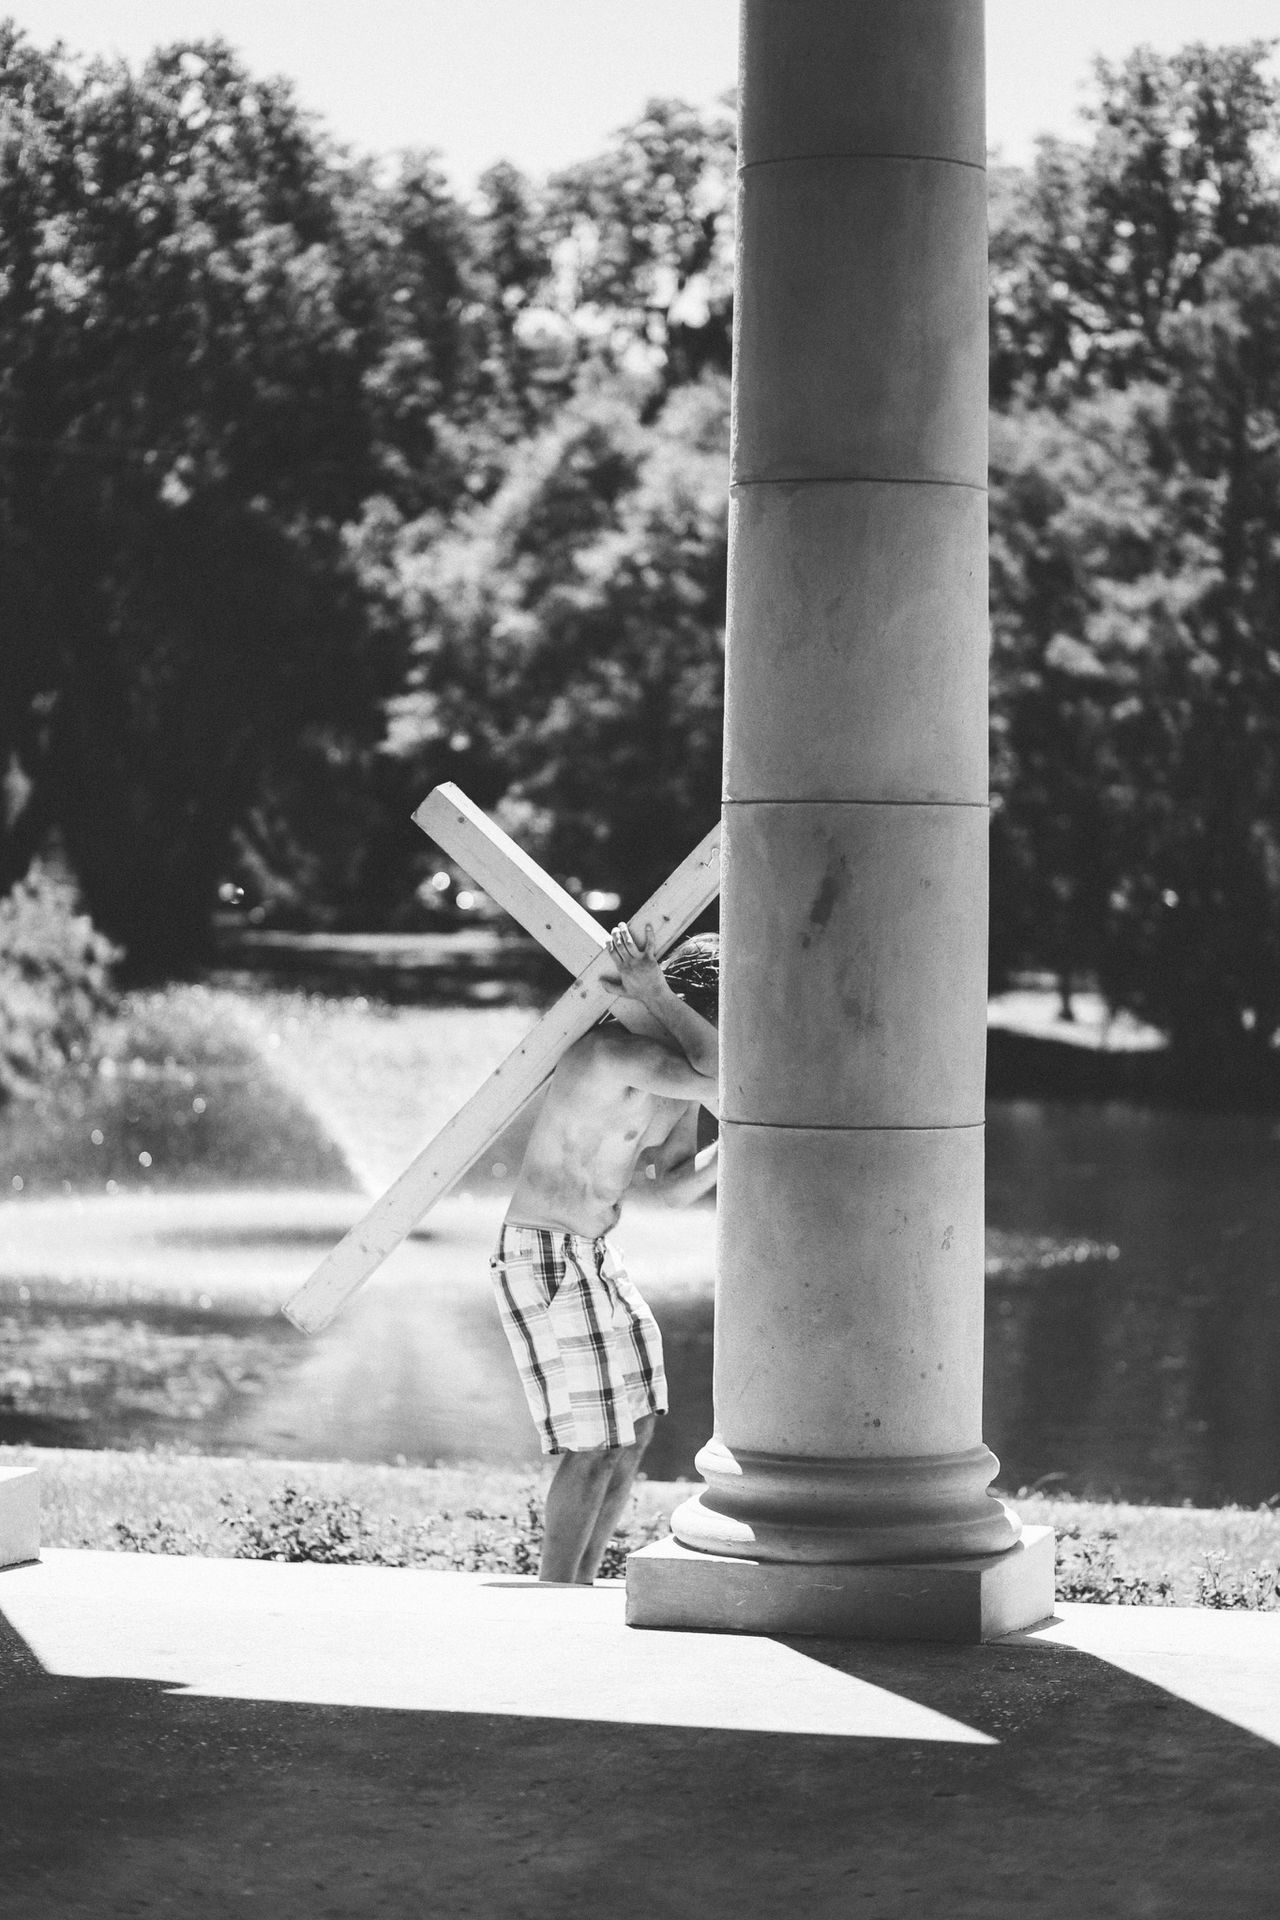 Shades Of Grey Taking Photos NOLA Travel Christianity Carry On From My Point Of View Travel Photography EyeEm Best Shots Peoplephotography